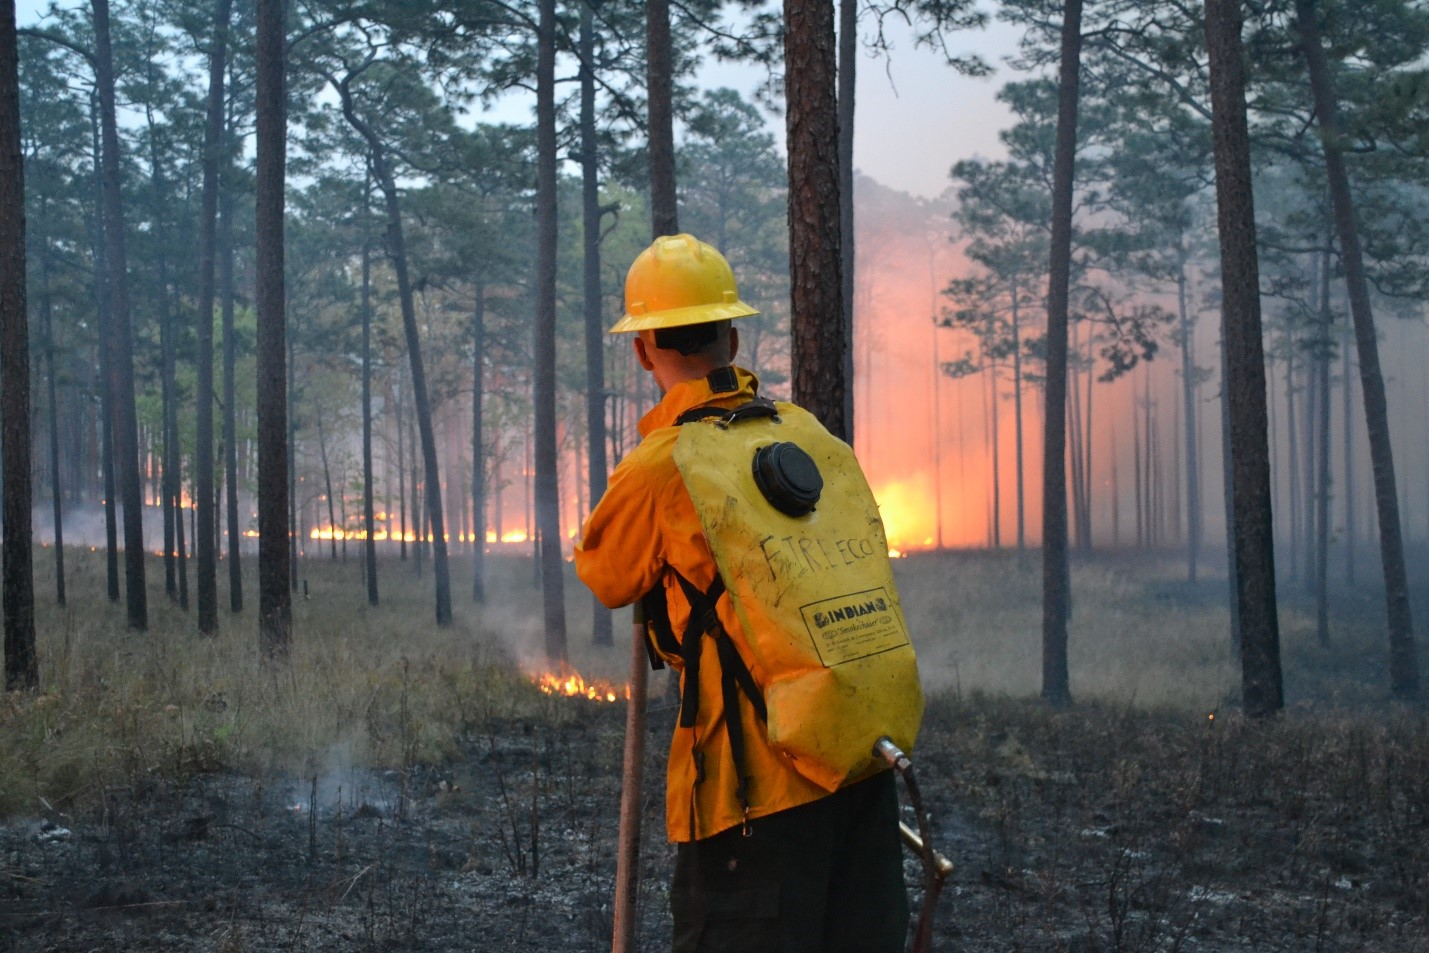 Austin Dixon of the Tall Timbers Research Station and Land Conservancy monitors a prescribed burn.